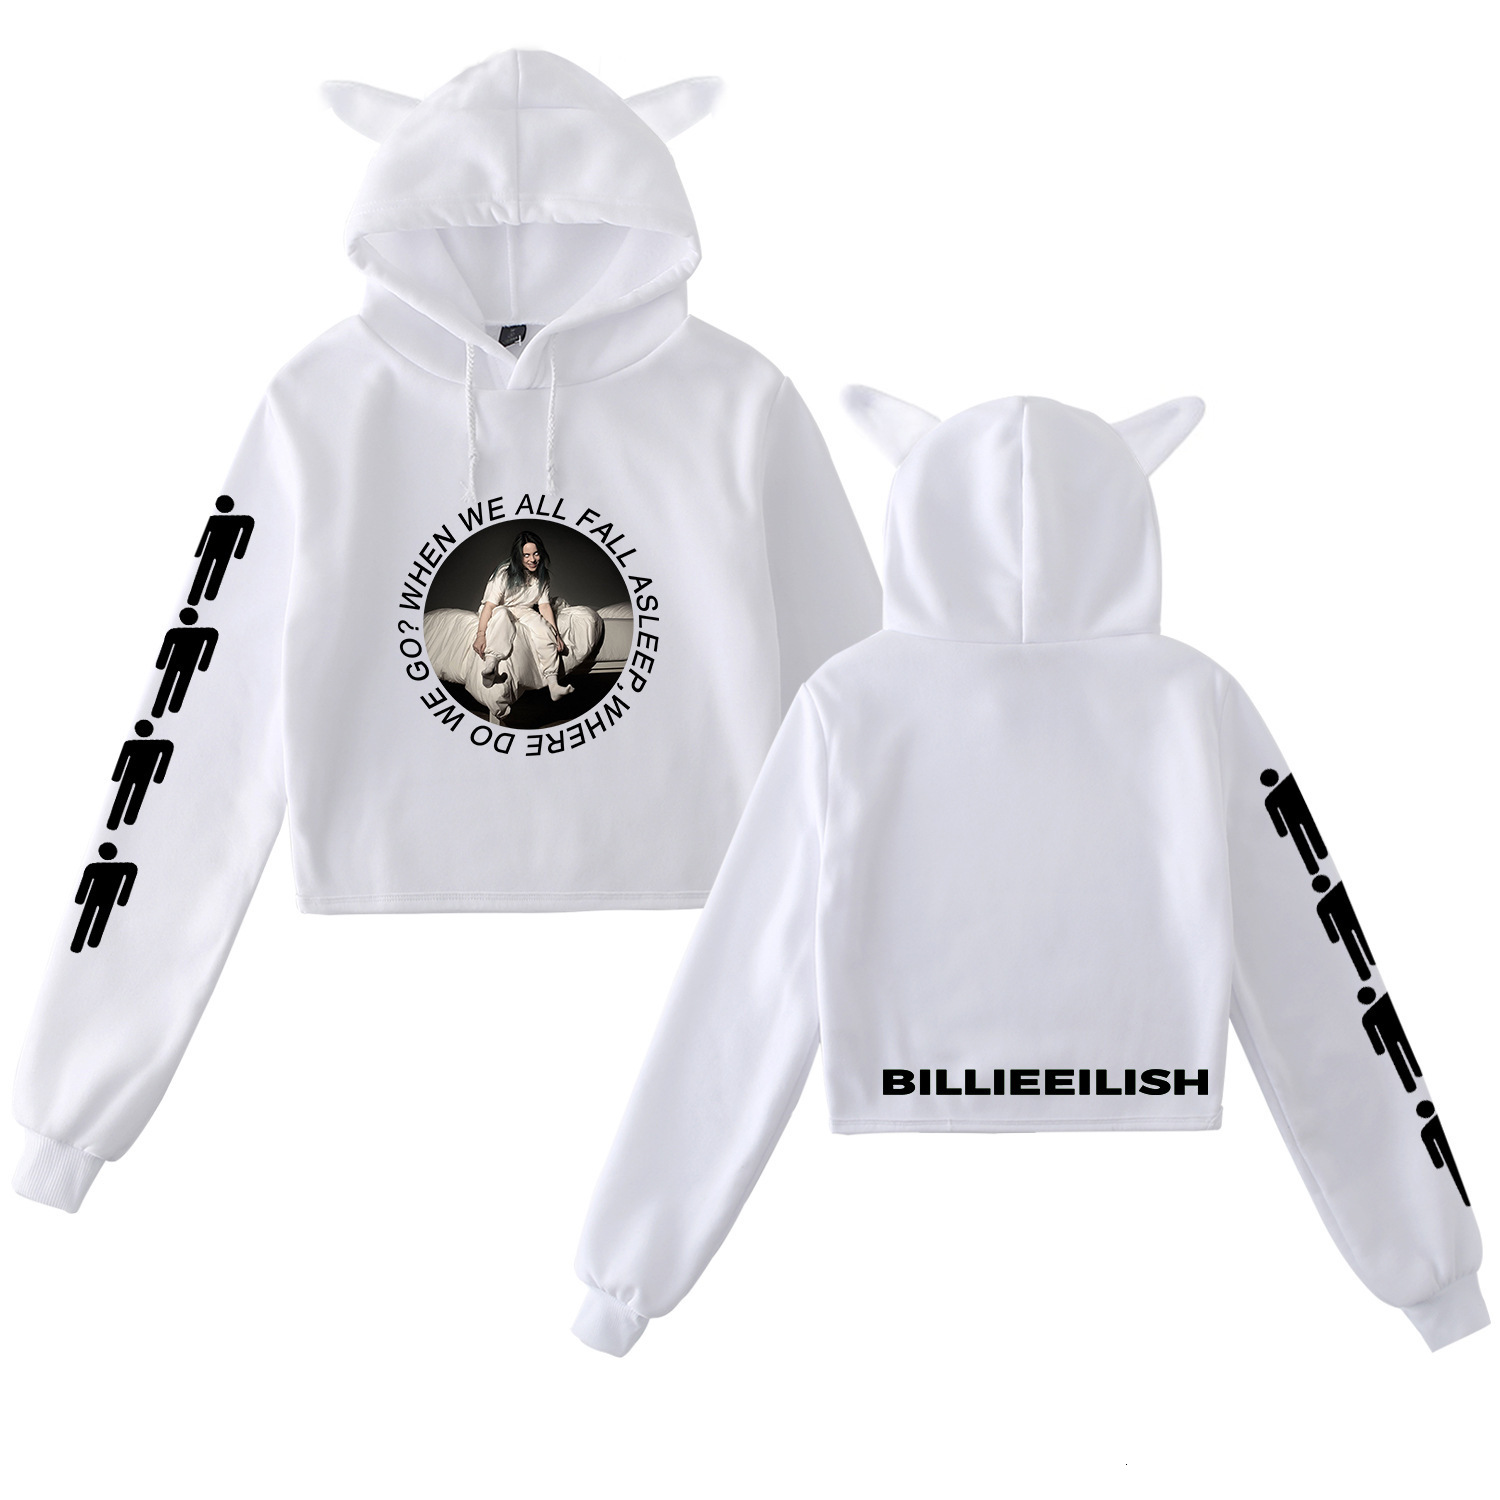 Billie Eilish Cat's Ear Hoodies Sweatshirt Jacket Casual Oversized Hoodie Plus Size 4XL Merchandise